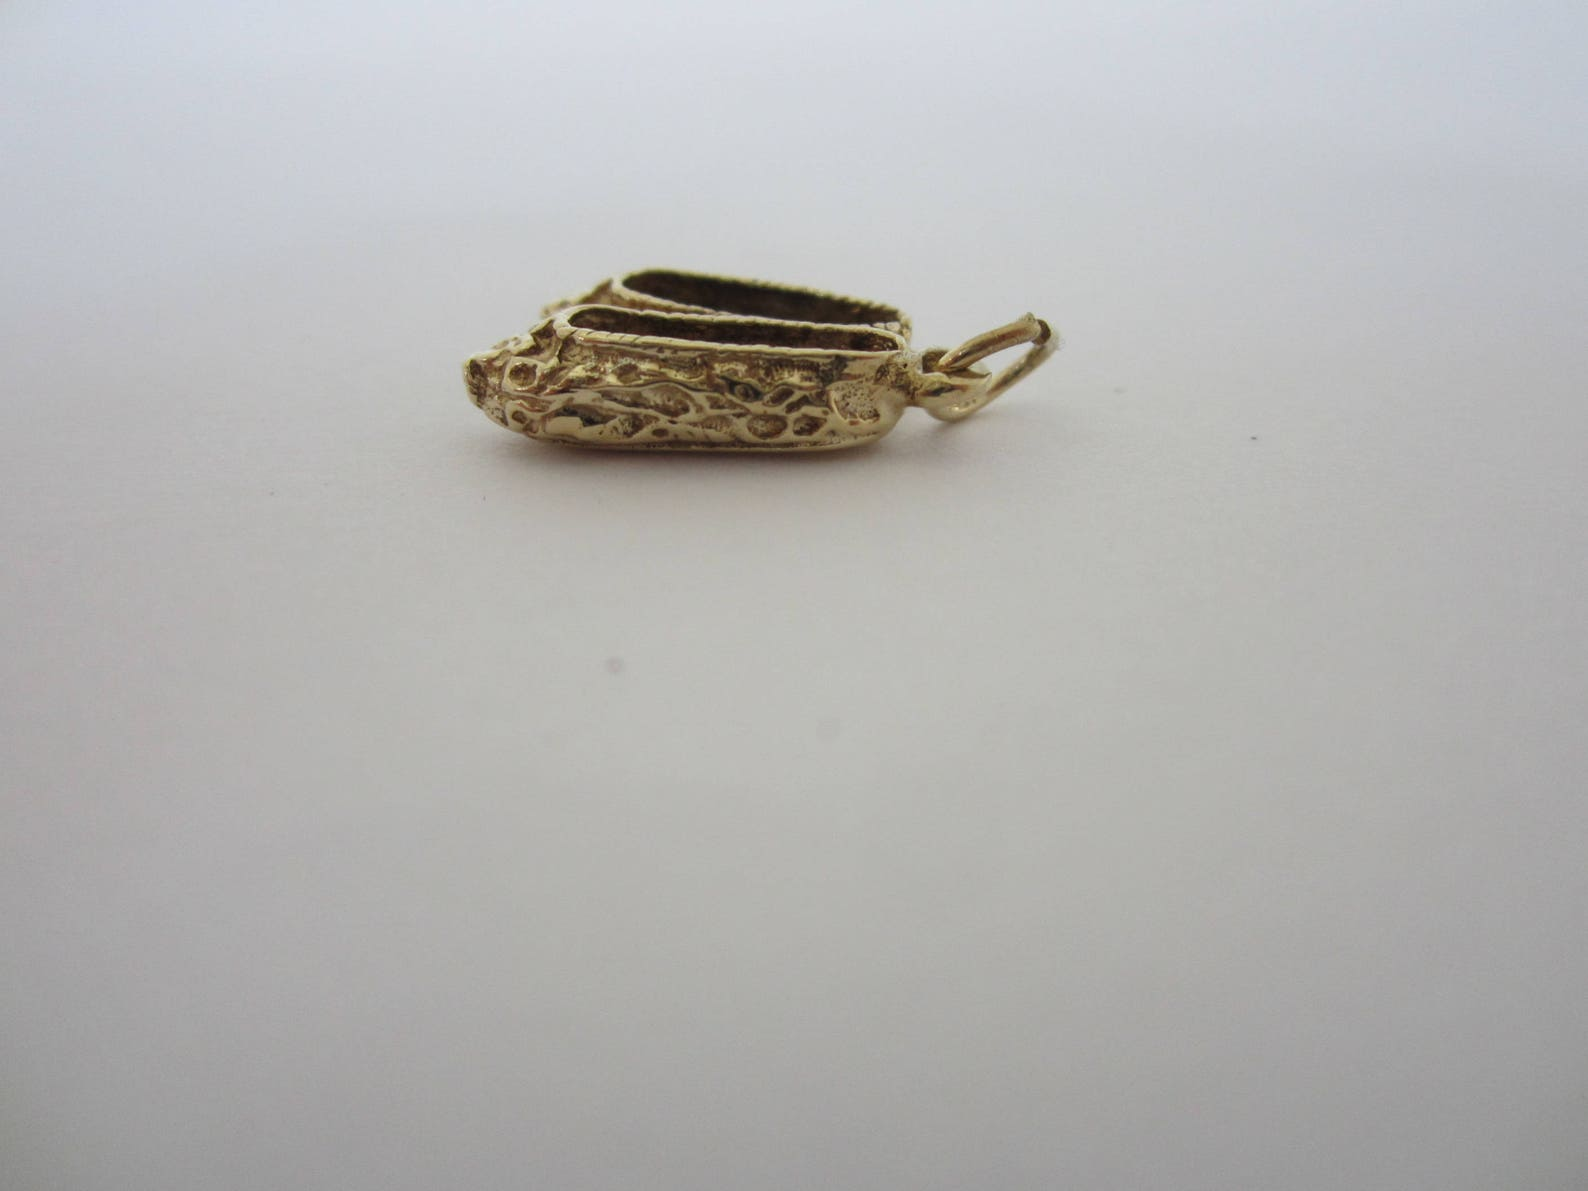 10k yellow gold ballet flat shoes, gold shoe charm, ladies flat shoe charm